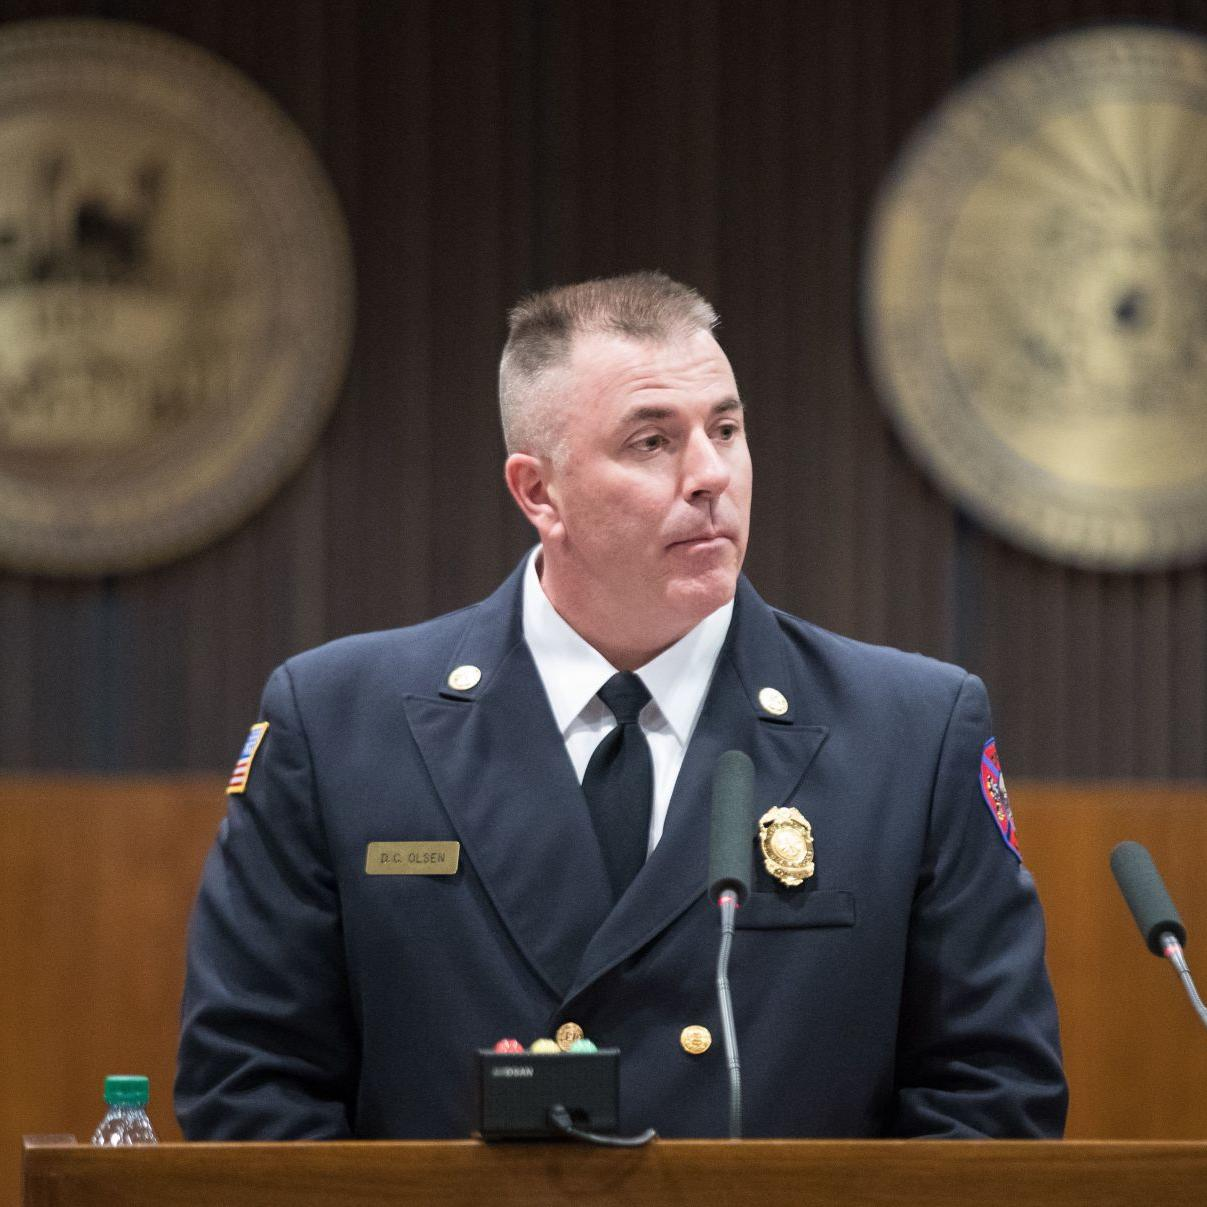 Omaha fire chief will get $630,000 pension payment at